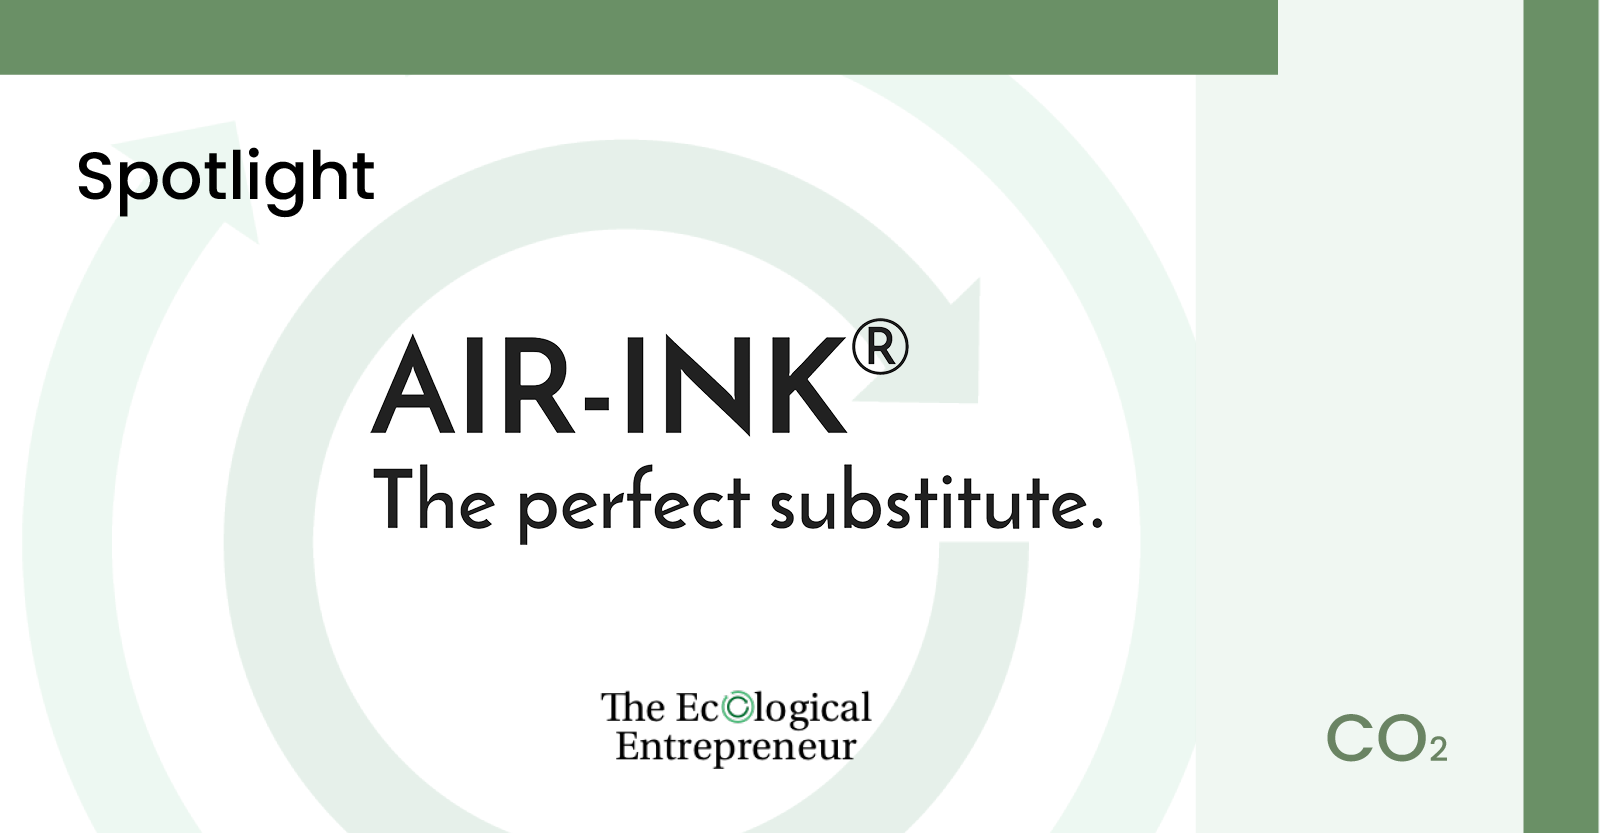 Air Ink Spotlight by the Ecological Entrepreneur